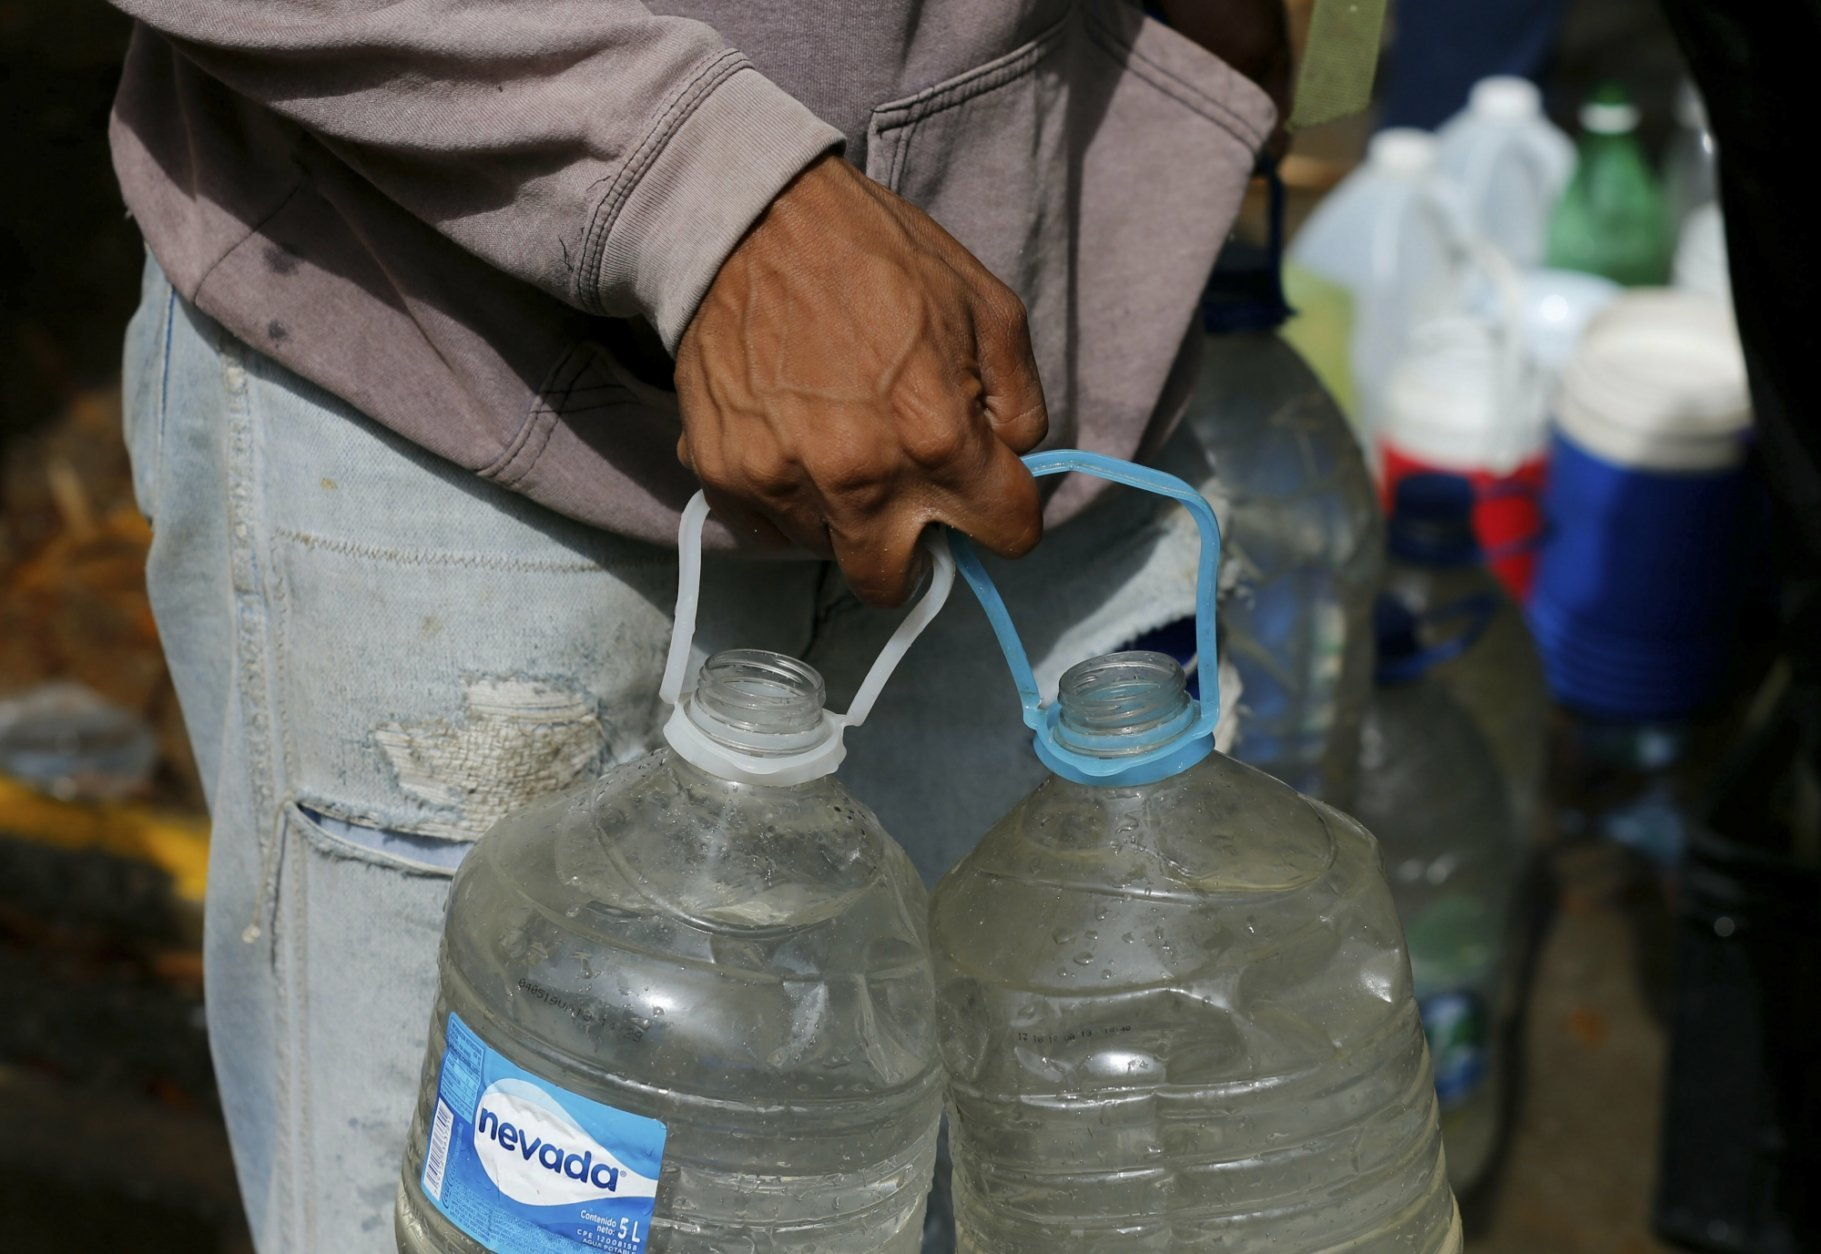 A man carries plastic bottles filled with water he collected from a pipeline left open, during rolling blackouts which affects the water pumps in people's homes, in Caracas, Venezuela, Monday, March 11, 2019. The blackout has intensified the toxic political climate, with opposition leader Juan Guaido blaming alleged government corruption and mismanagement and President Nicolas Maduro accusing his U.S.-backed adversary of sabotaging the national grid. (AP Photo/Fernando Llano)